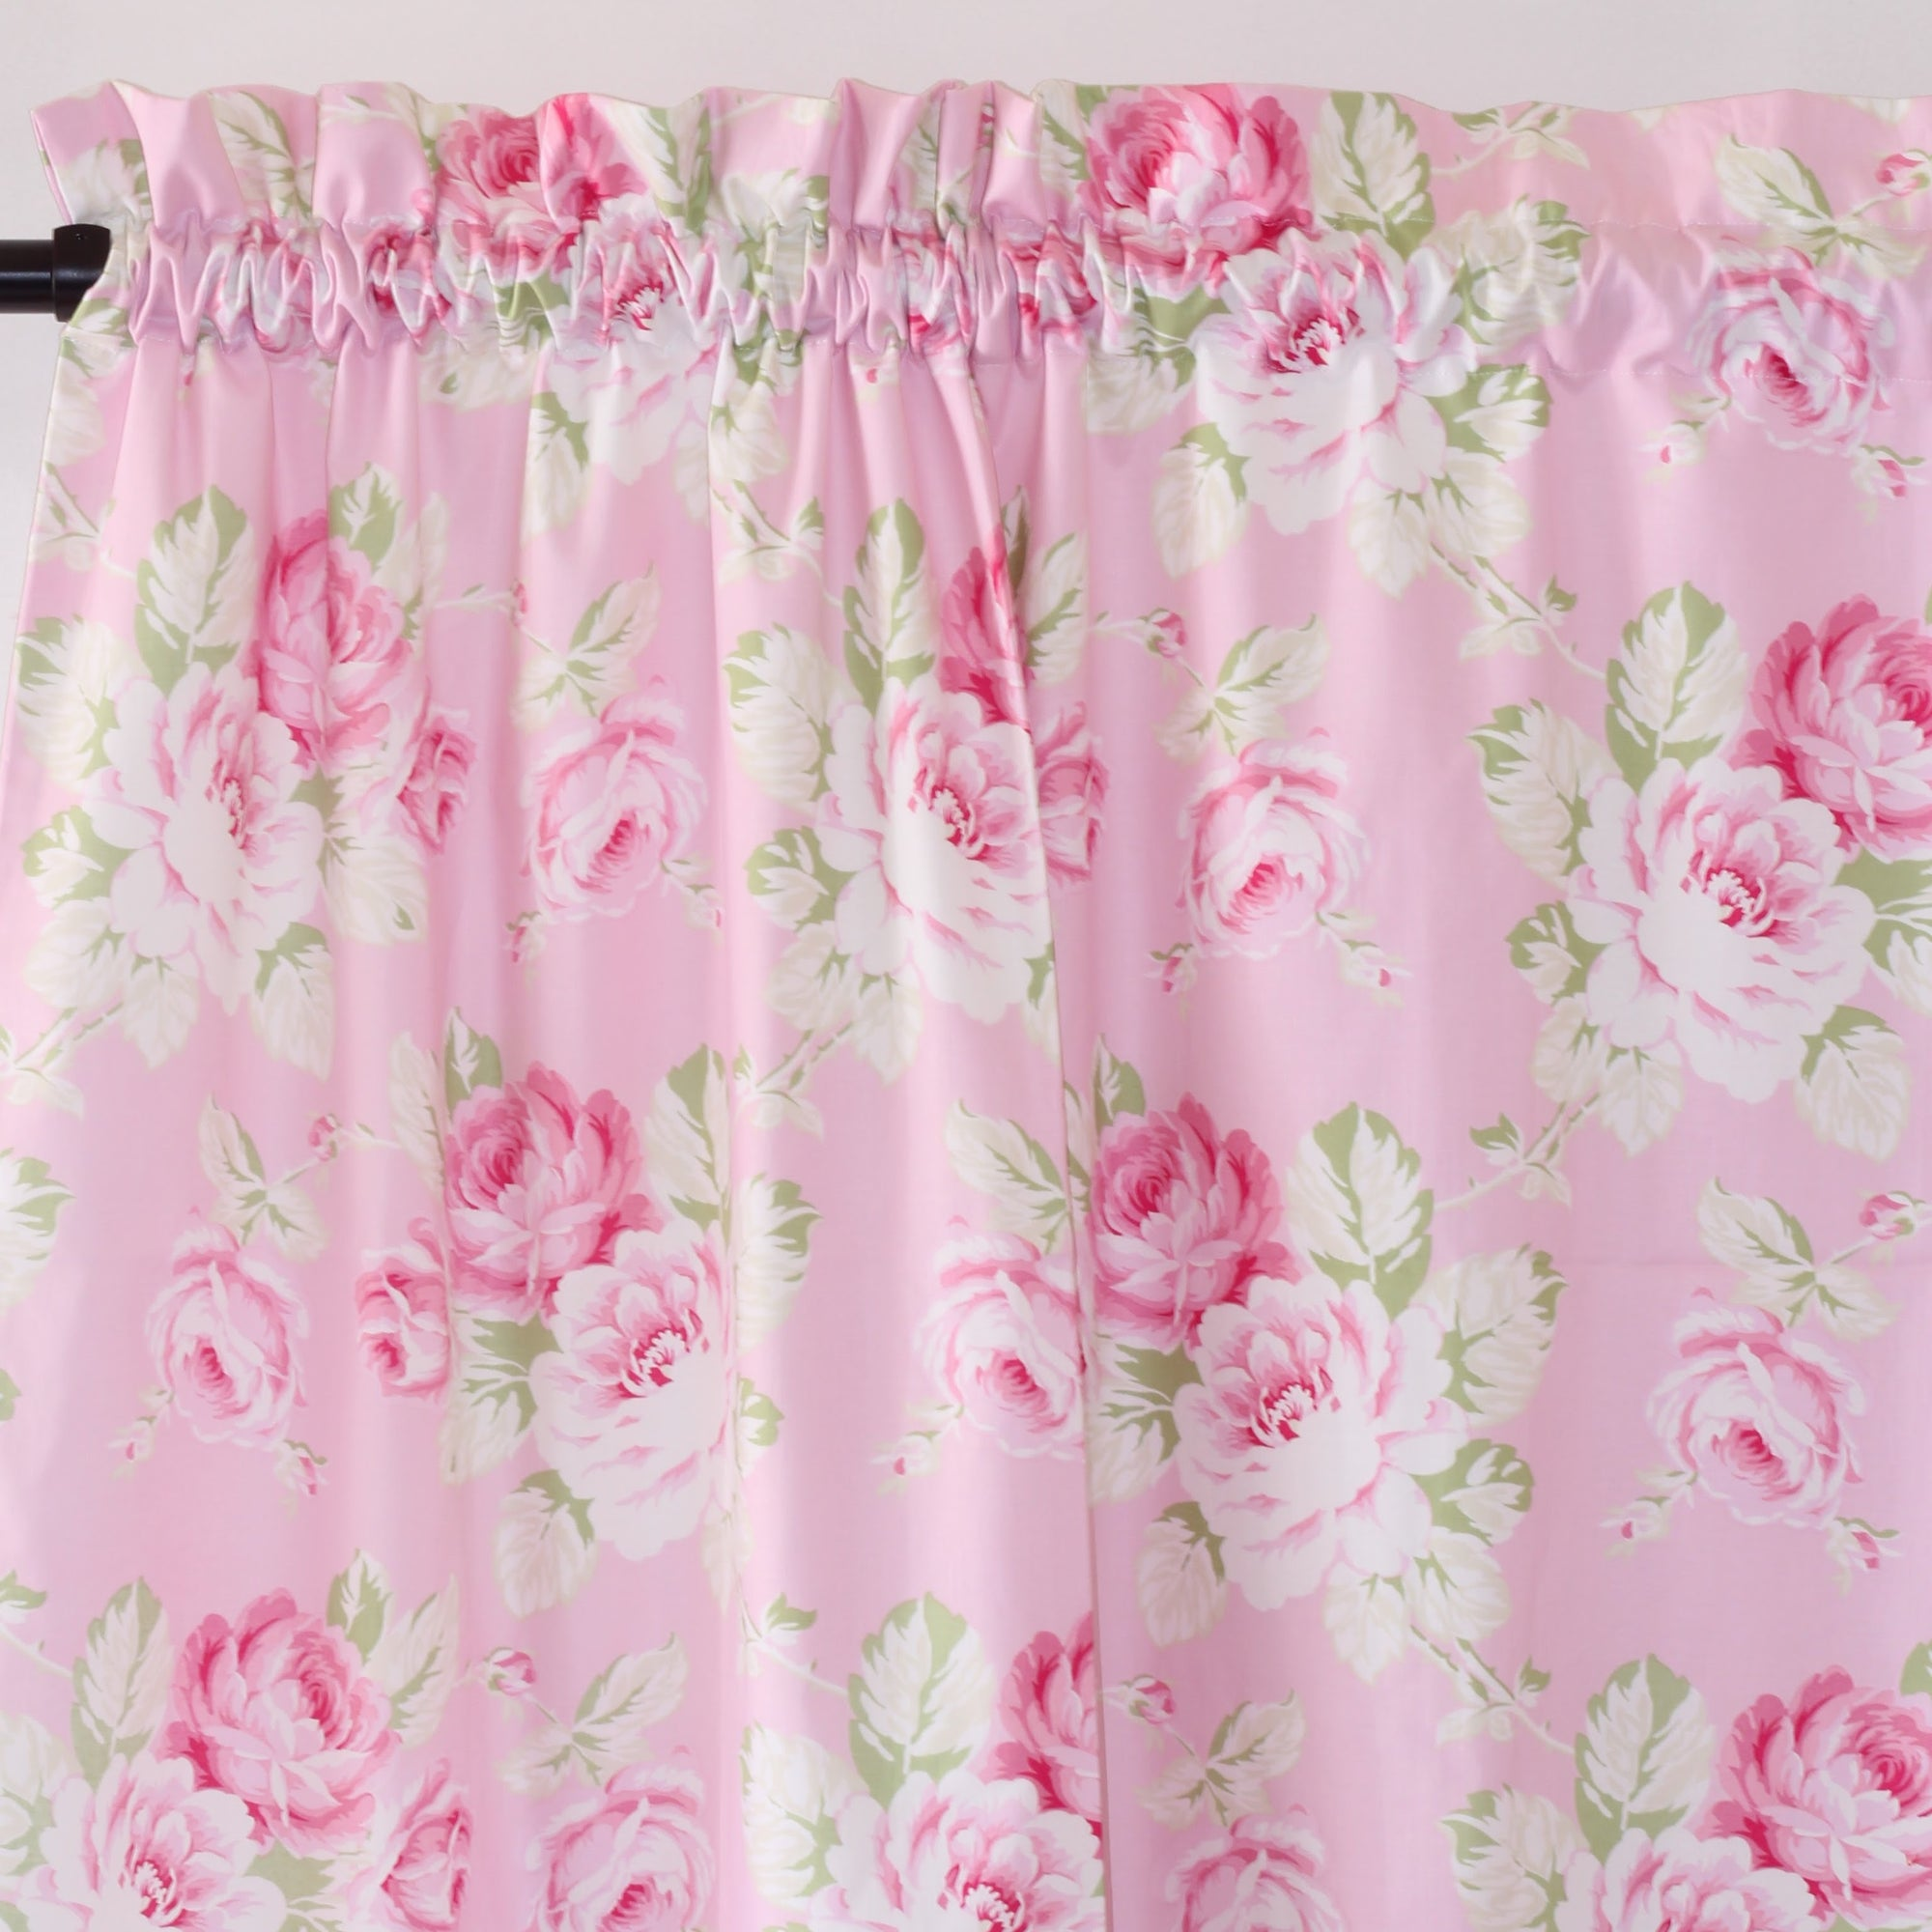 Curtain Panels Pair Pink Floral Shabby Chic Roses Jack And Jill Boutique